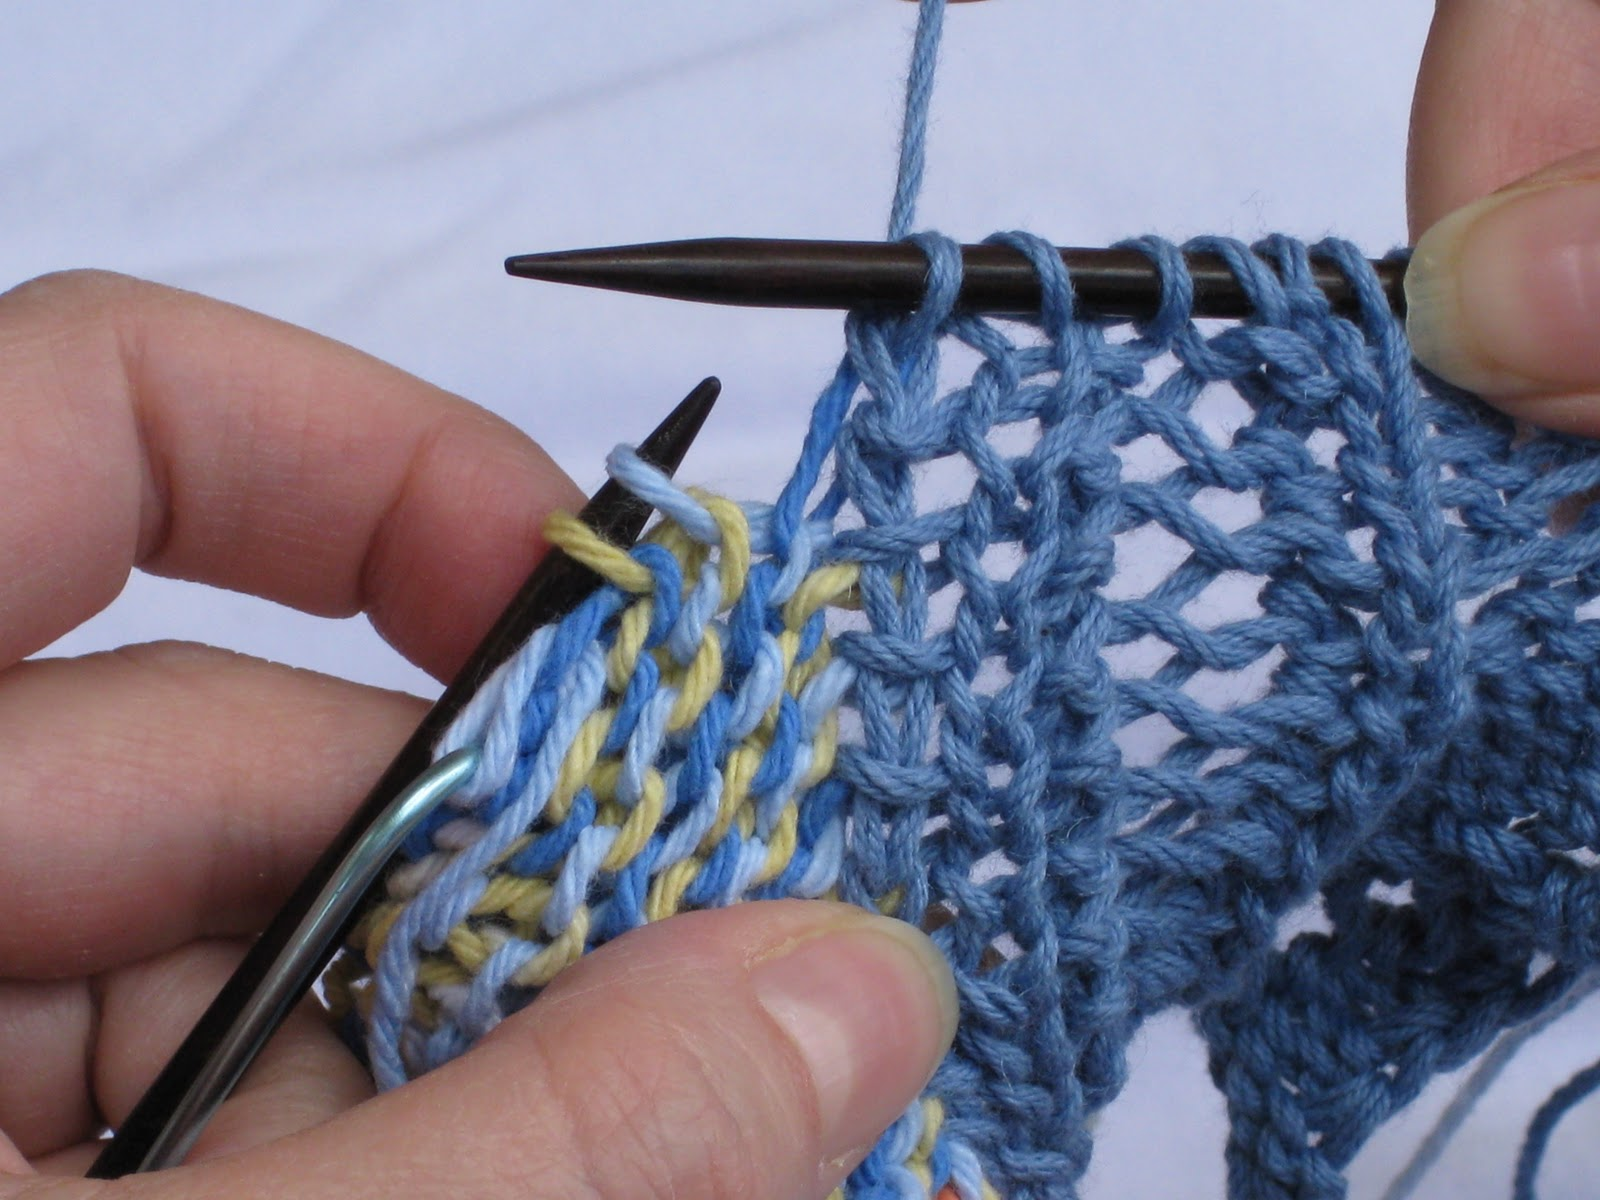 Knitting Pick Up Stitches Selvedge : Never Frog Pond: Edge tutorial, part 3: Making Joins